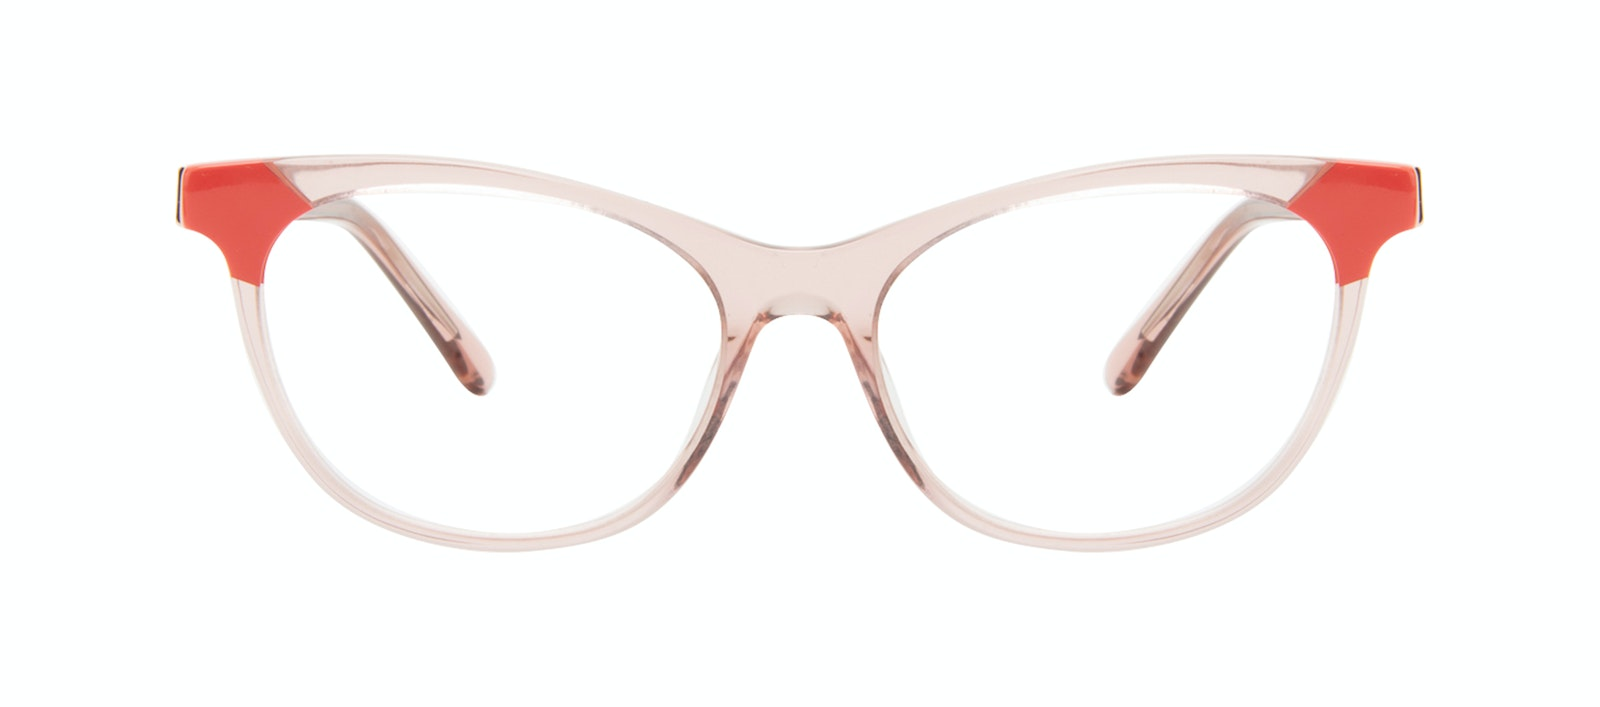 Affordable Fashion Glasses Cat Eye Eyeglasses Women Witty Pink Coral Front